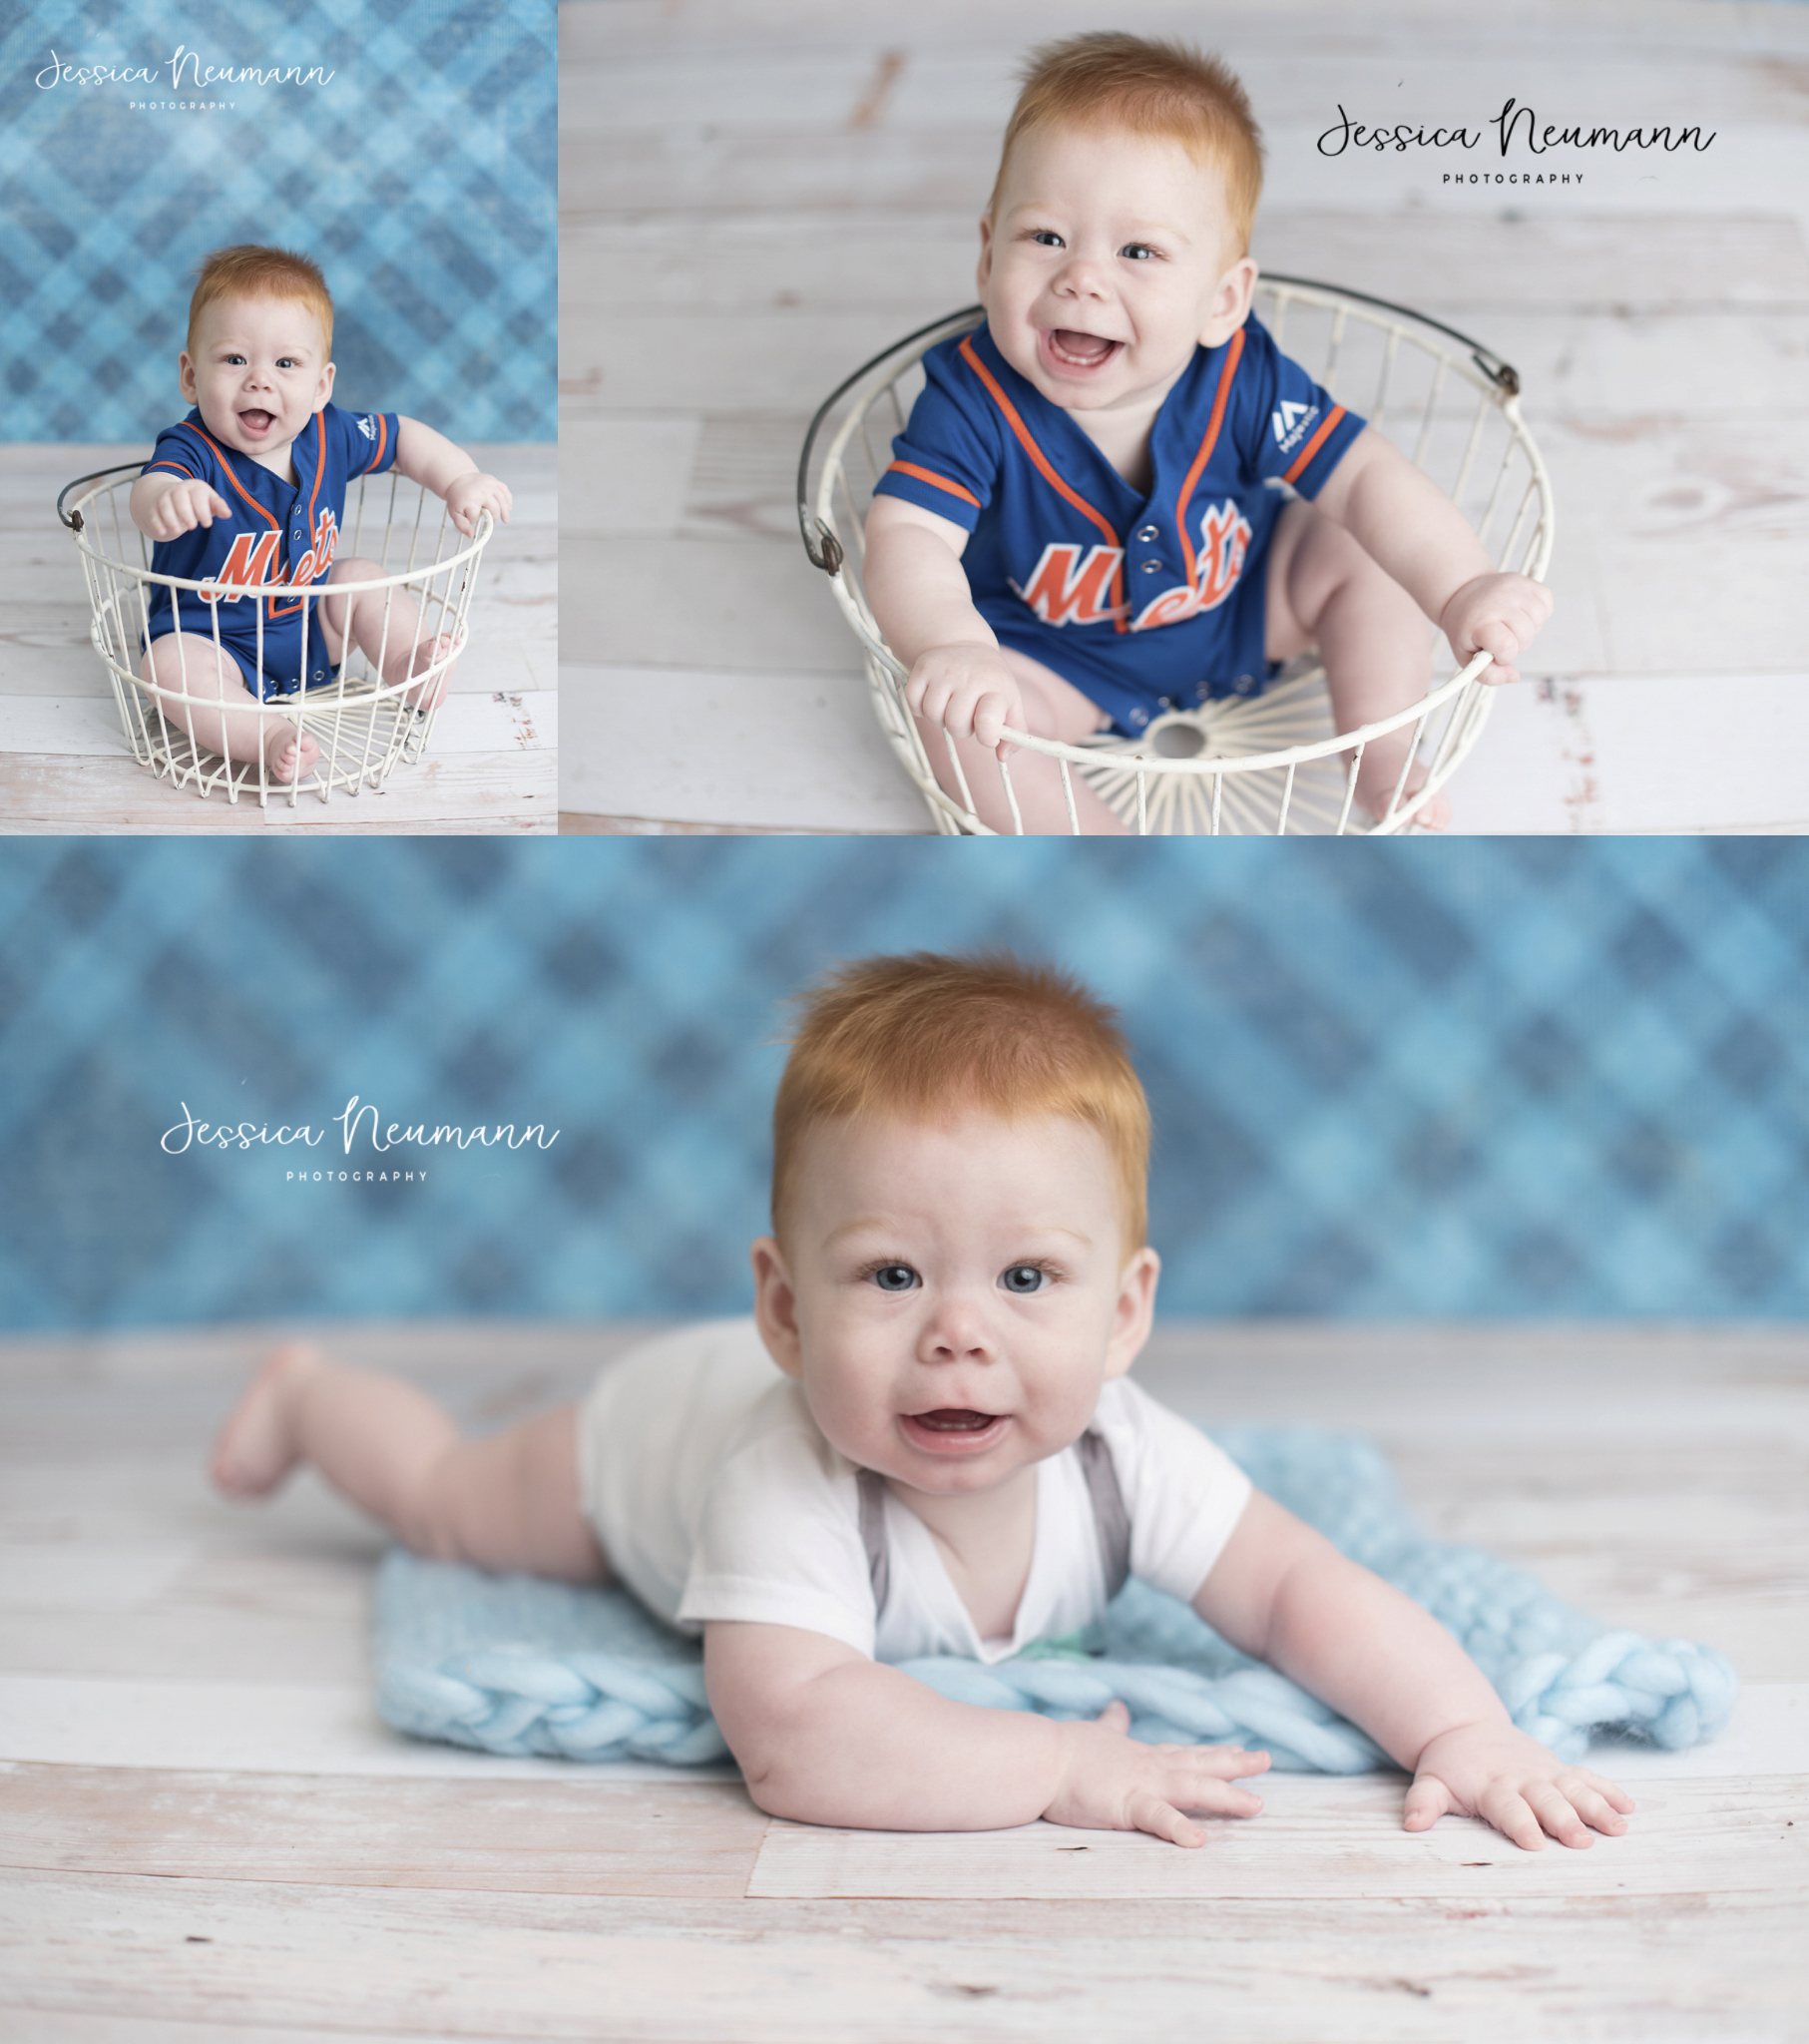 red hair baby 6 months